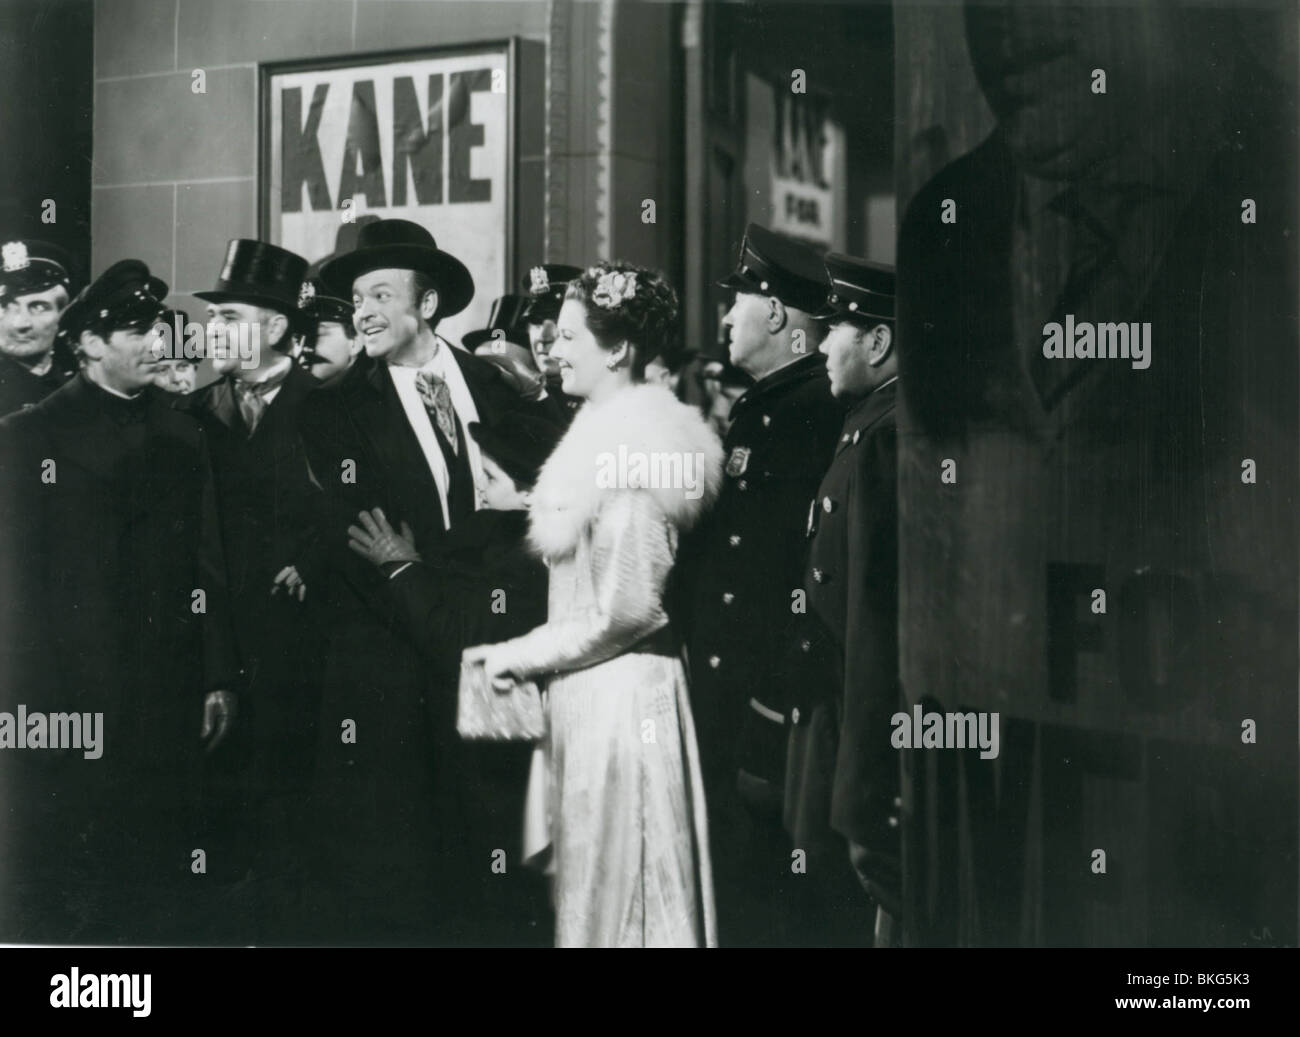 an analysis of citizen kane a movie by orson welles Welles would go on to reward their faith with some of the most innovative directing of his time and a movie that routinely gets the gold star for best movie ever made citizen kane was the only film where welles had total creative control.